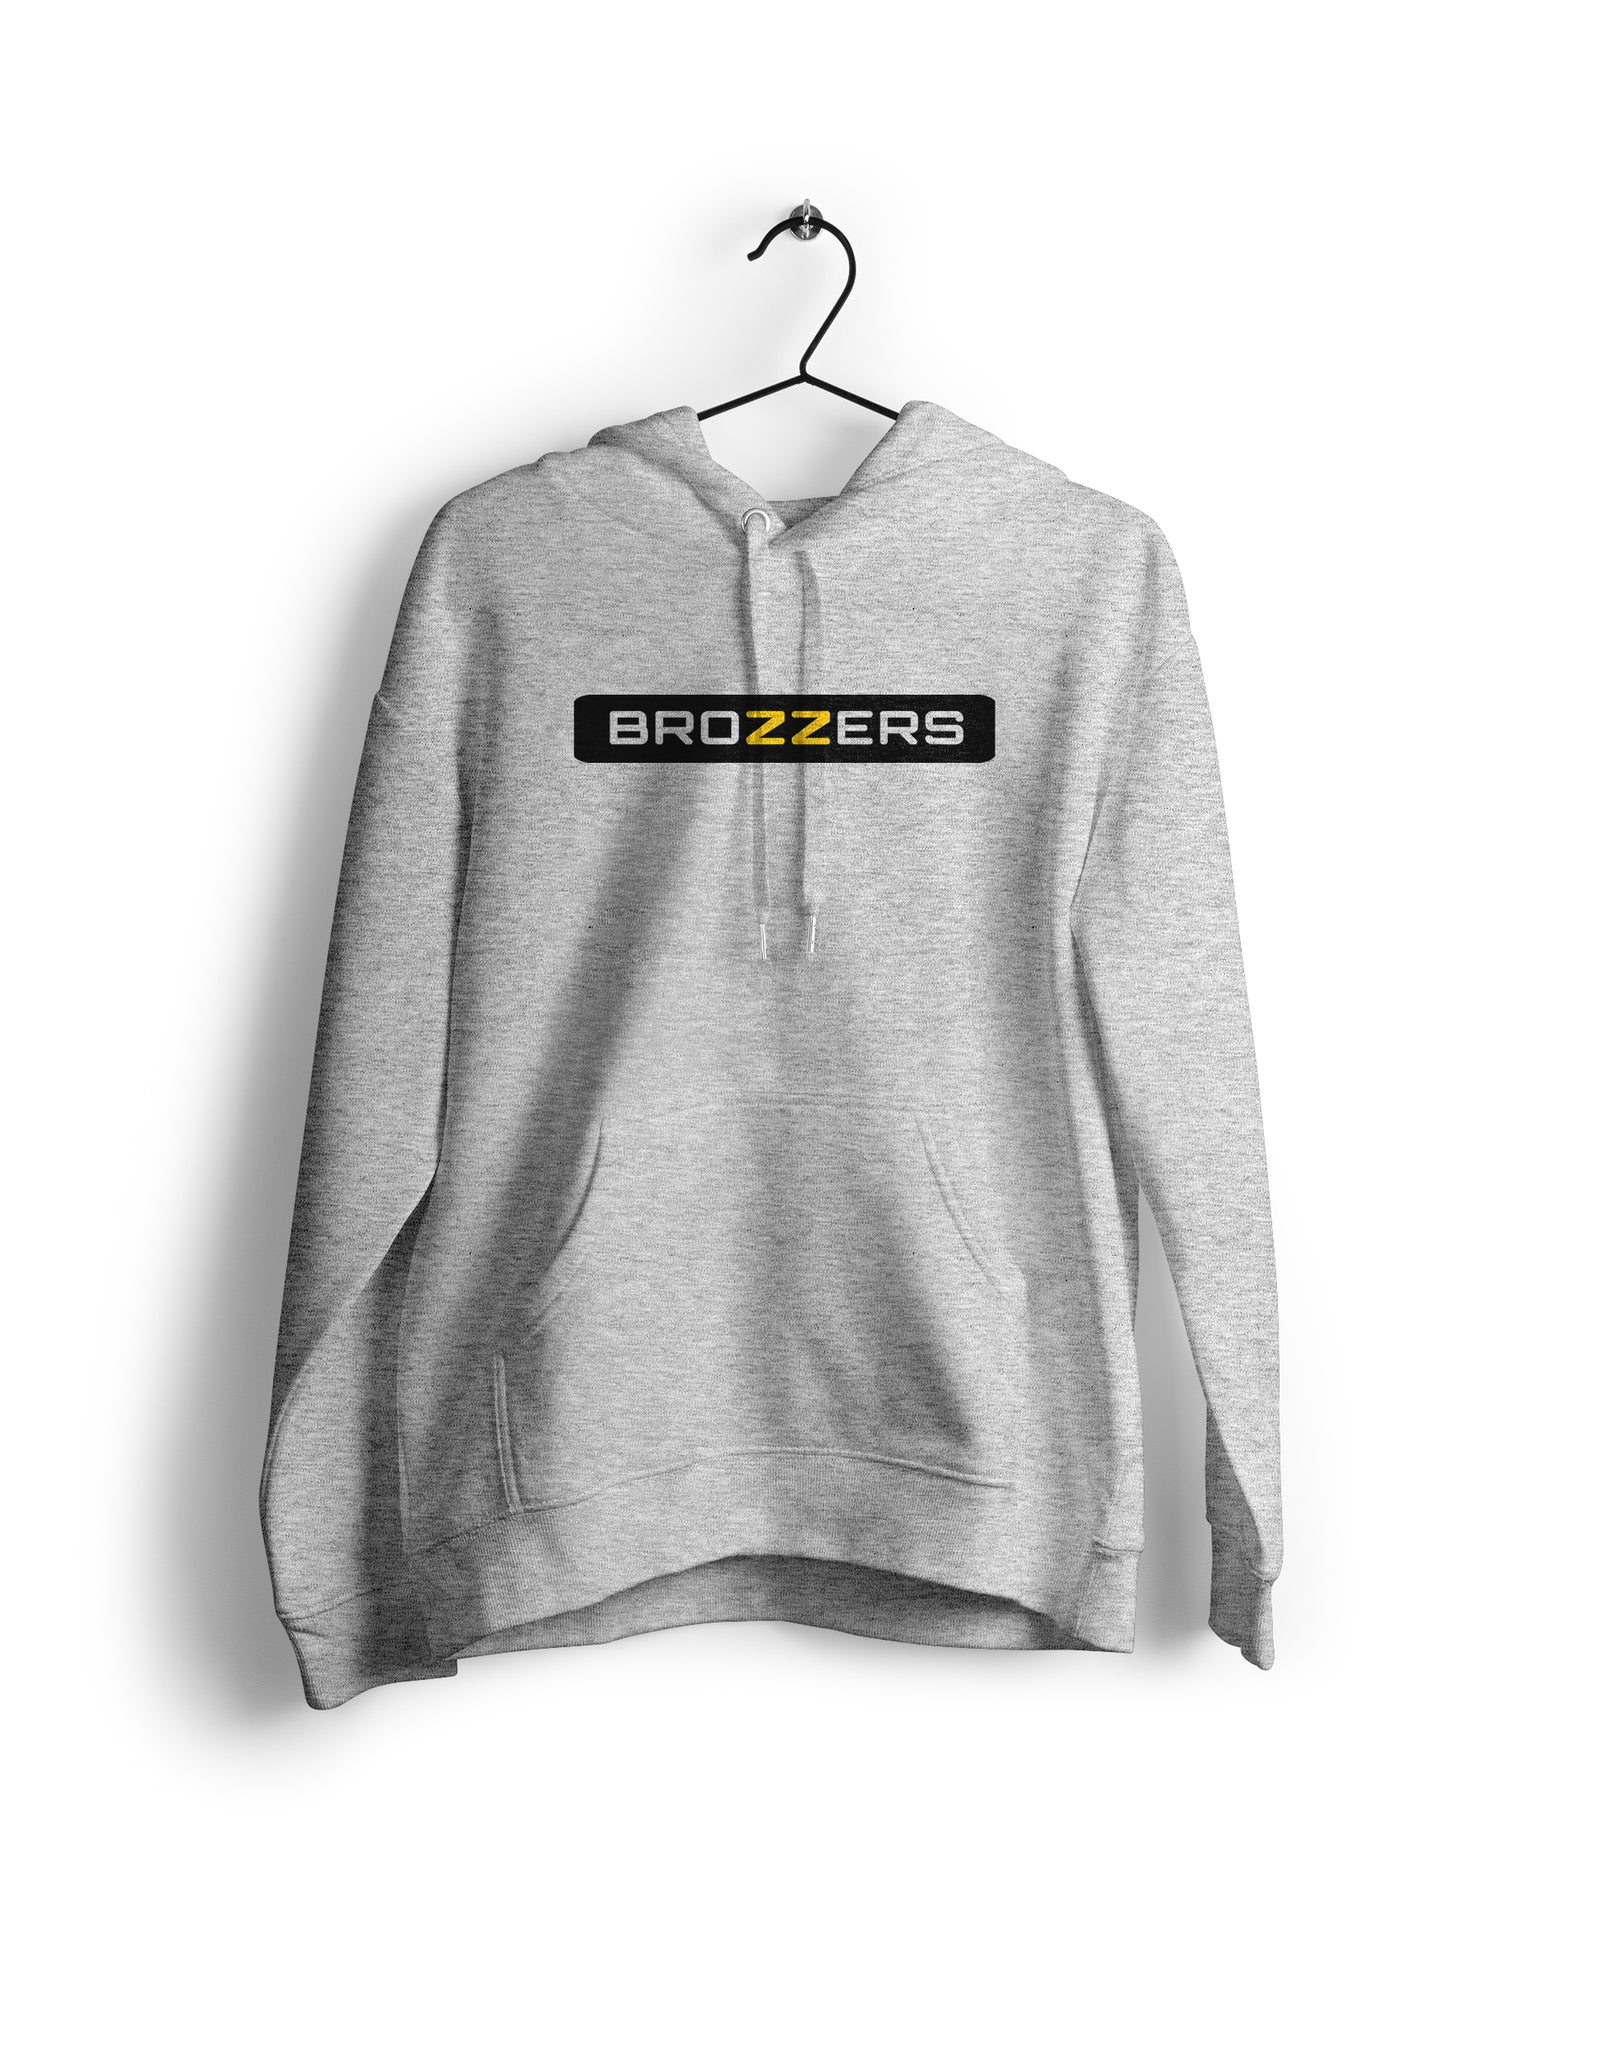 S / Grey Brozzers hood - Thrill Clothing